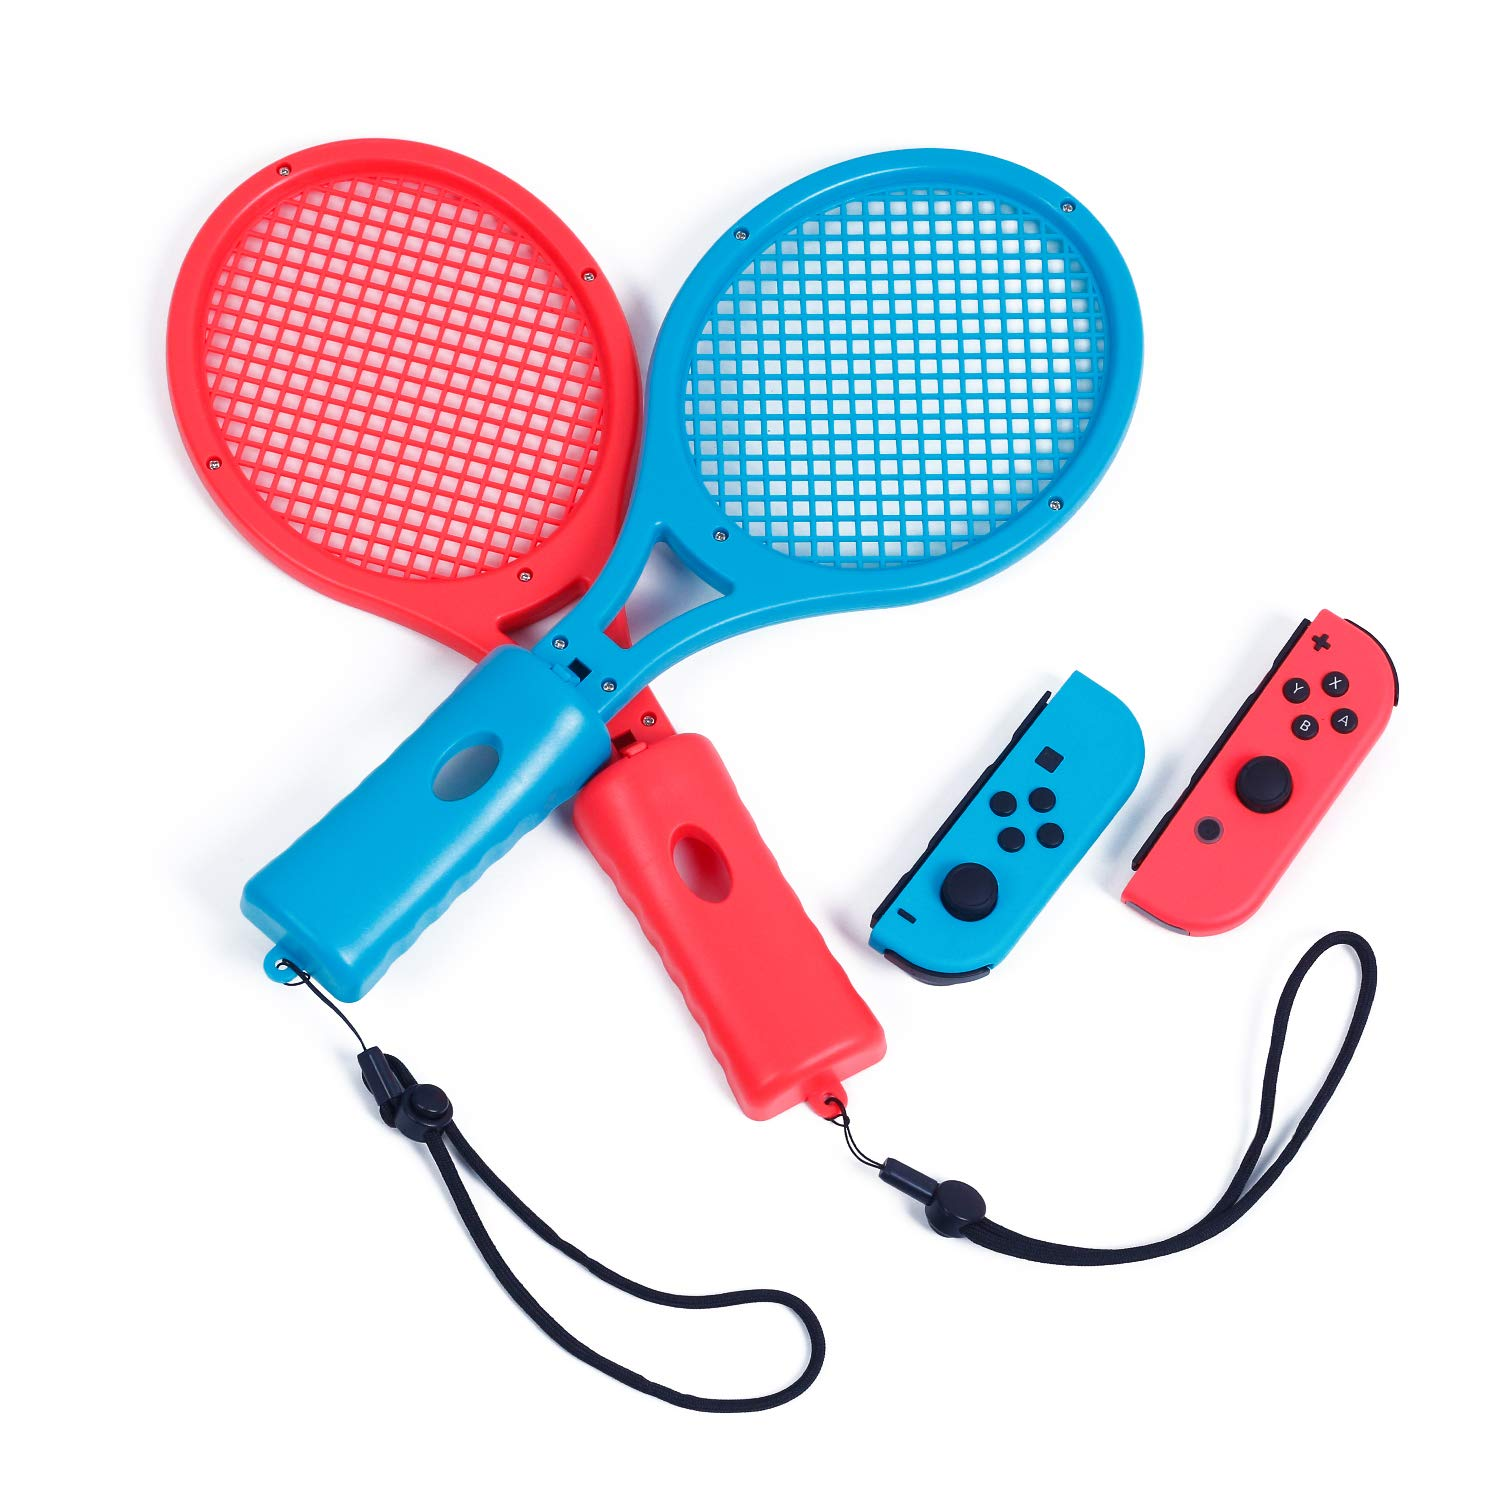 Tennis Racket for Nintendo Switch Mario Tennis Aces, Tennis Racket for Nintendo Switch Joy-Con Controller - Blue and Red by HEATFUN